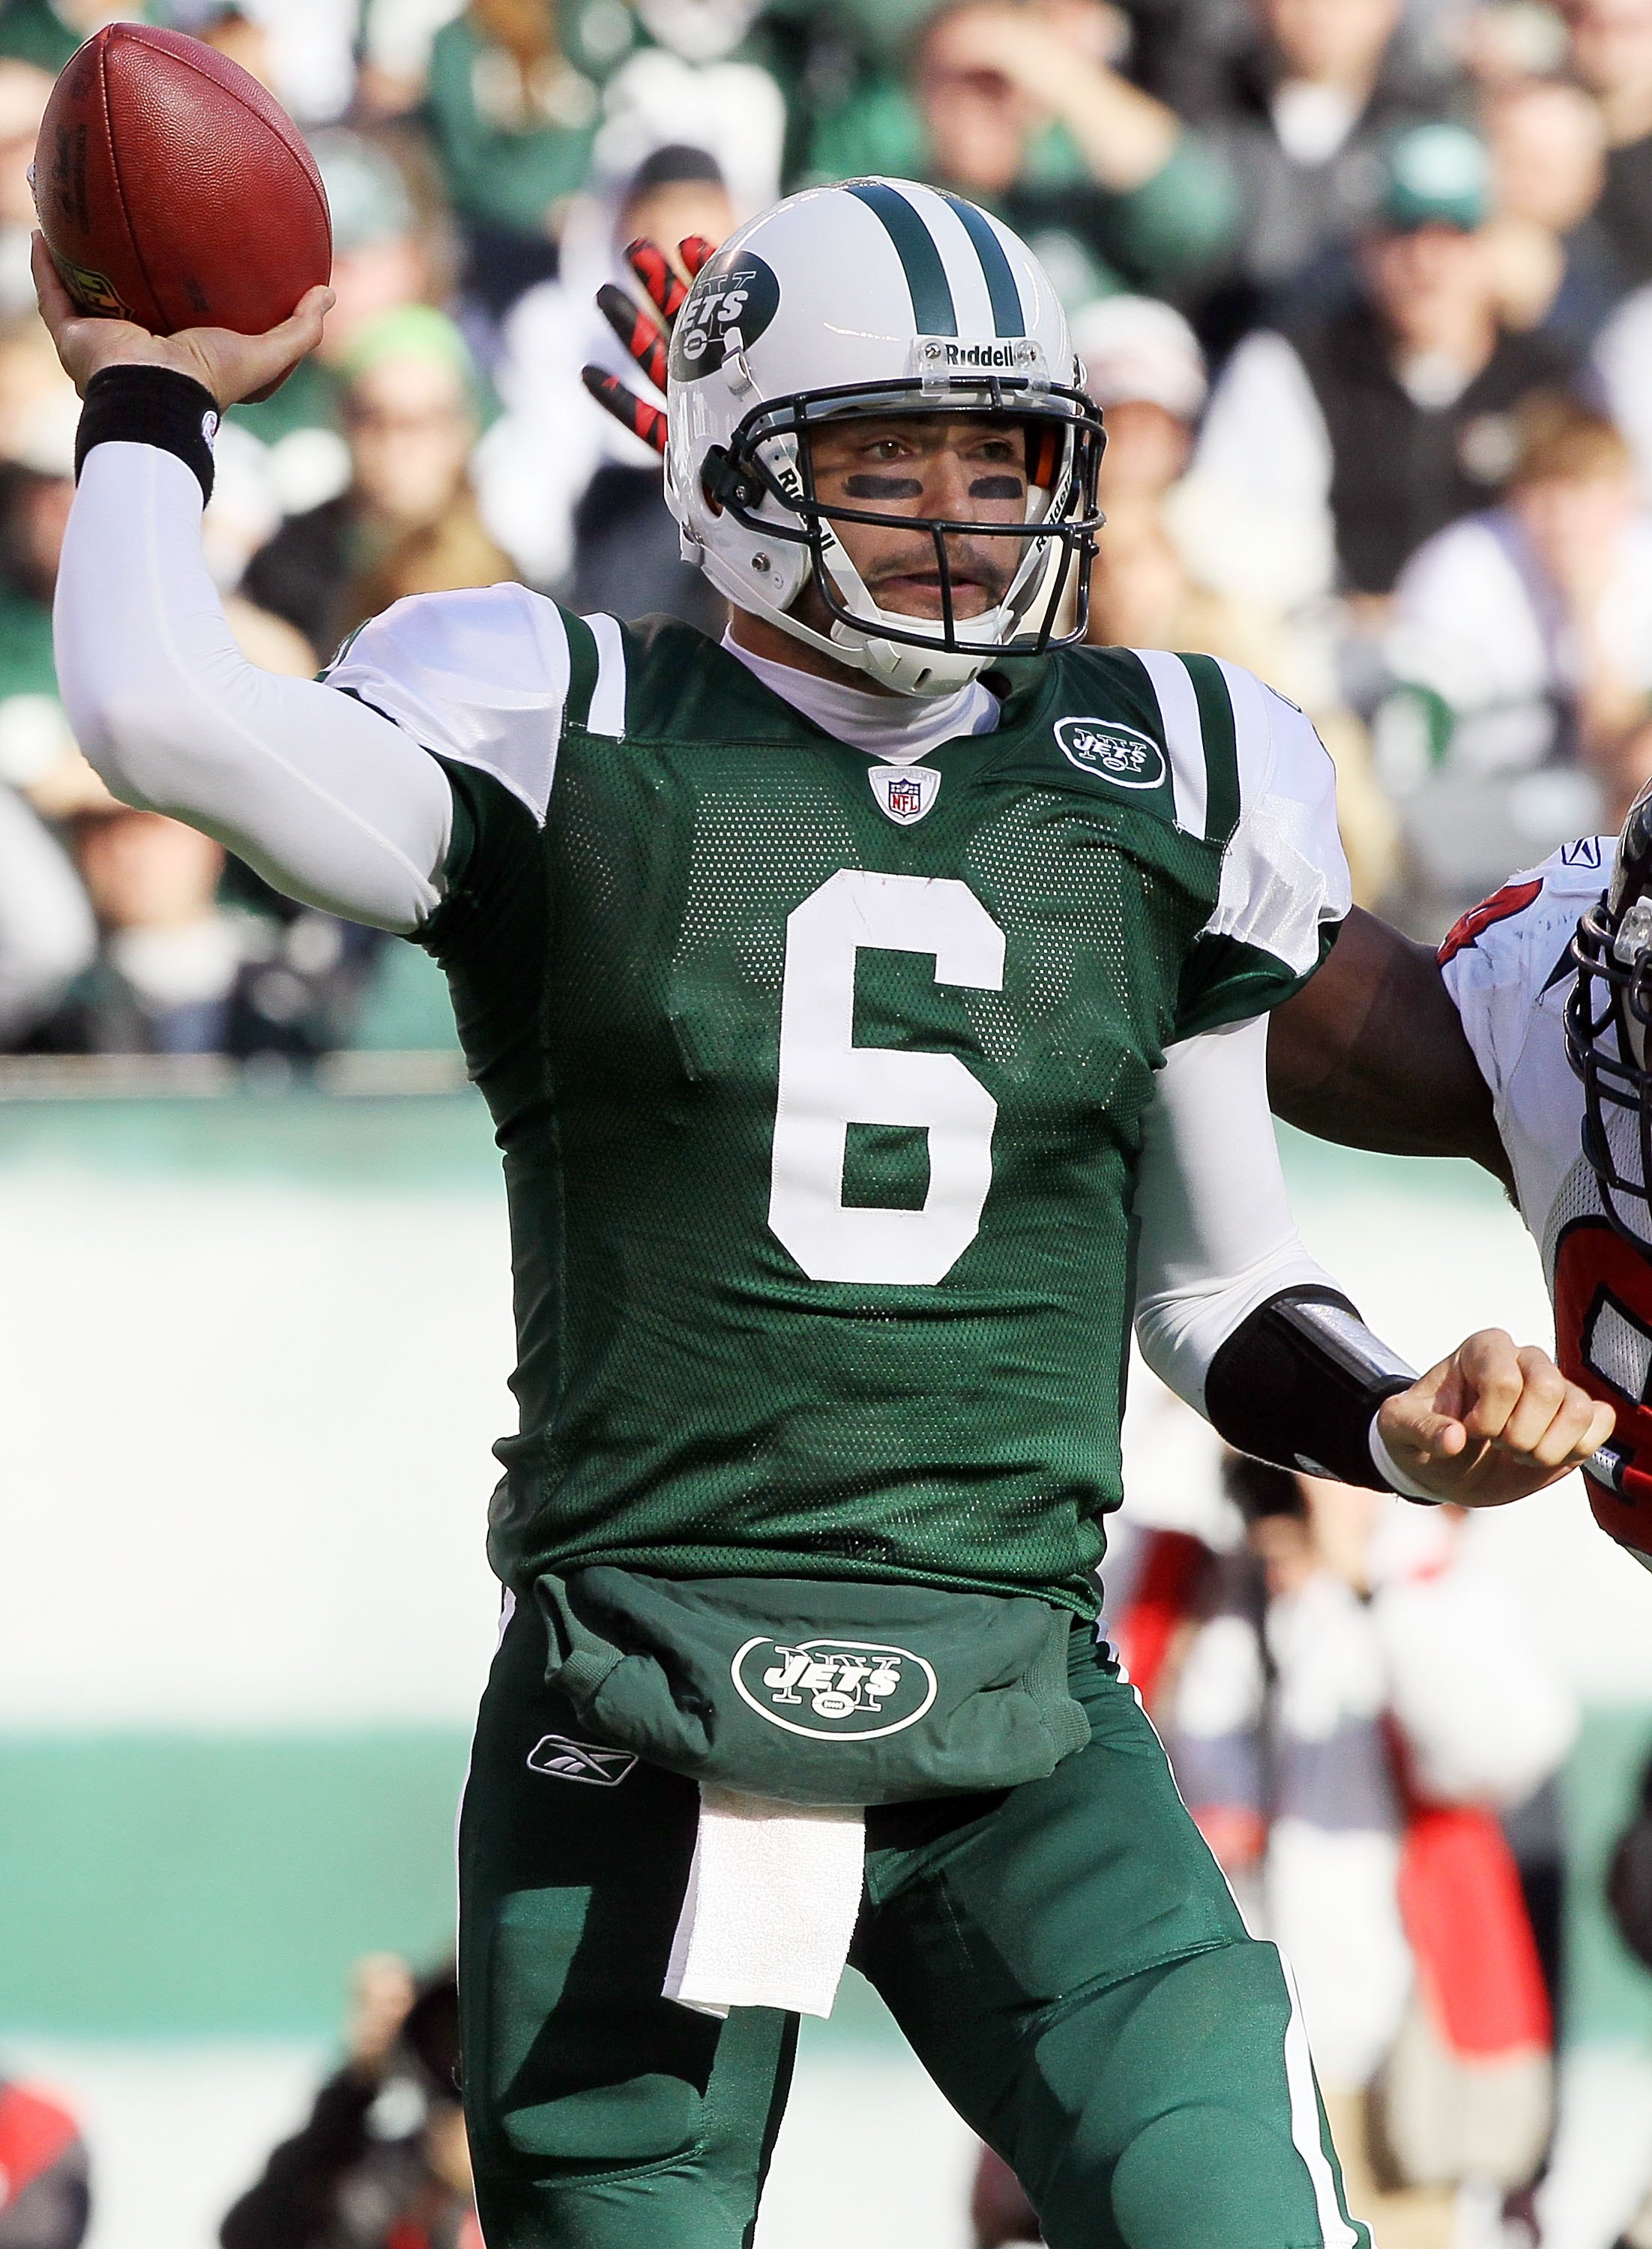 EAST RUTHERFORD, NJ - NOVEMBER 21:  Mark Sanchez #6 of the New York Jets looks to throw a pass against the Houston Texans on November 21, 2010 at the New Meadowlands Stadium in East Rutherford, New Jersey.  (Photo by Jim McIsaac/Getty Images)